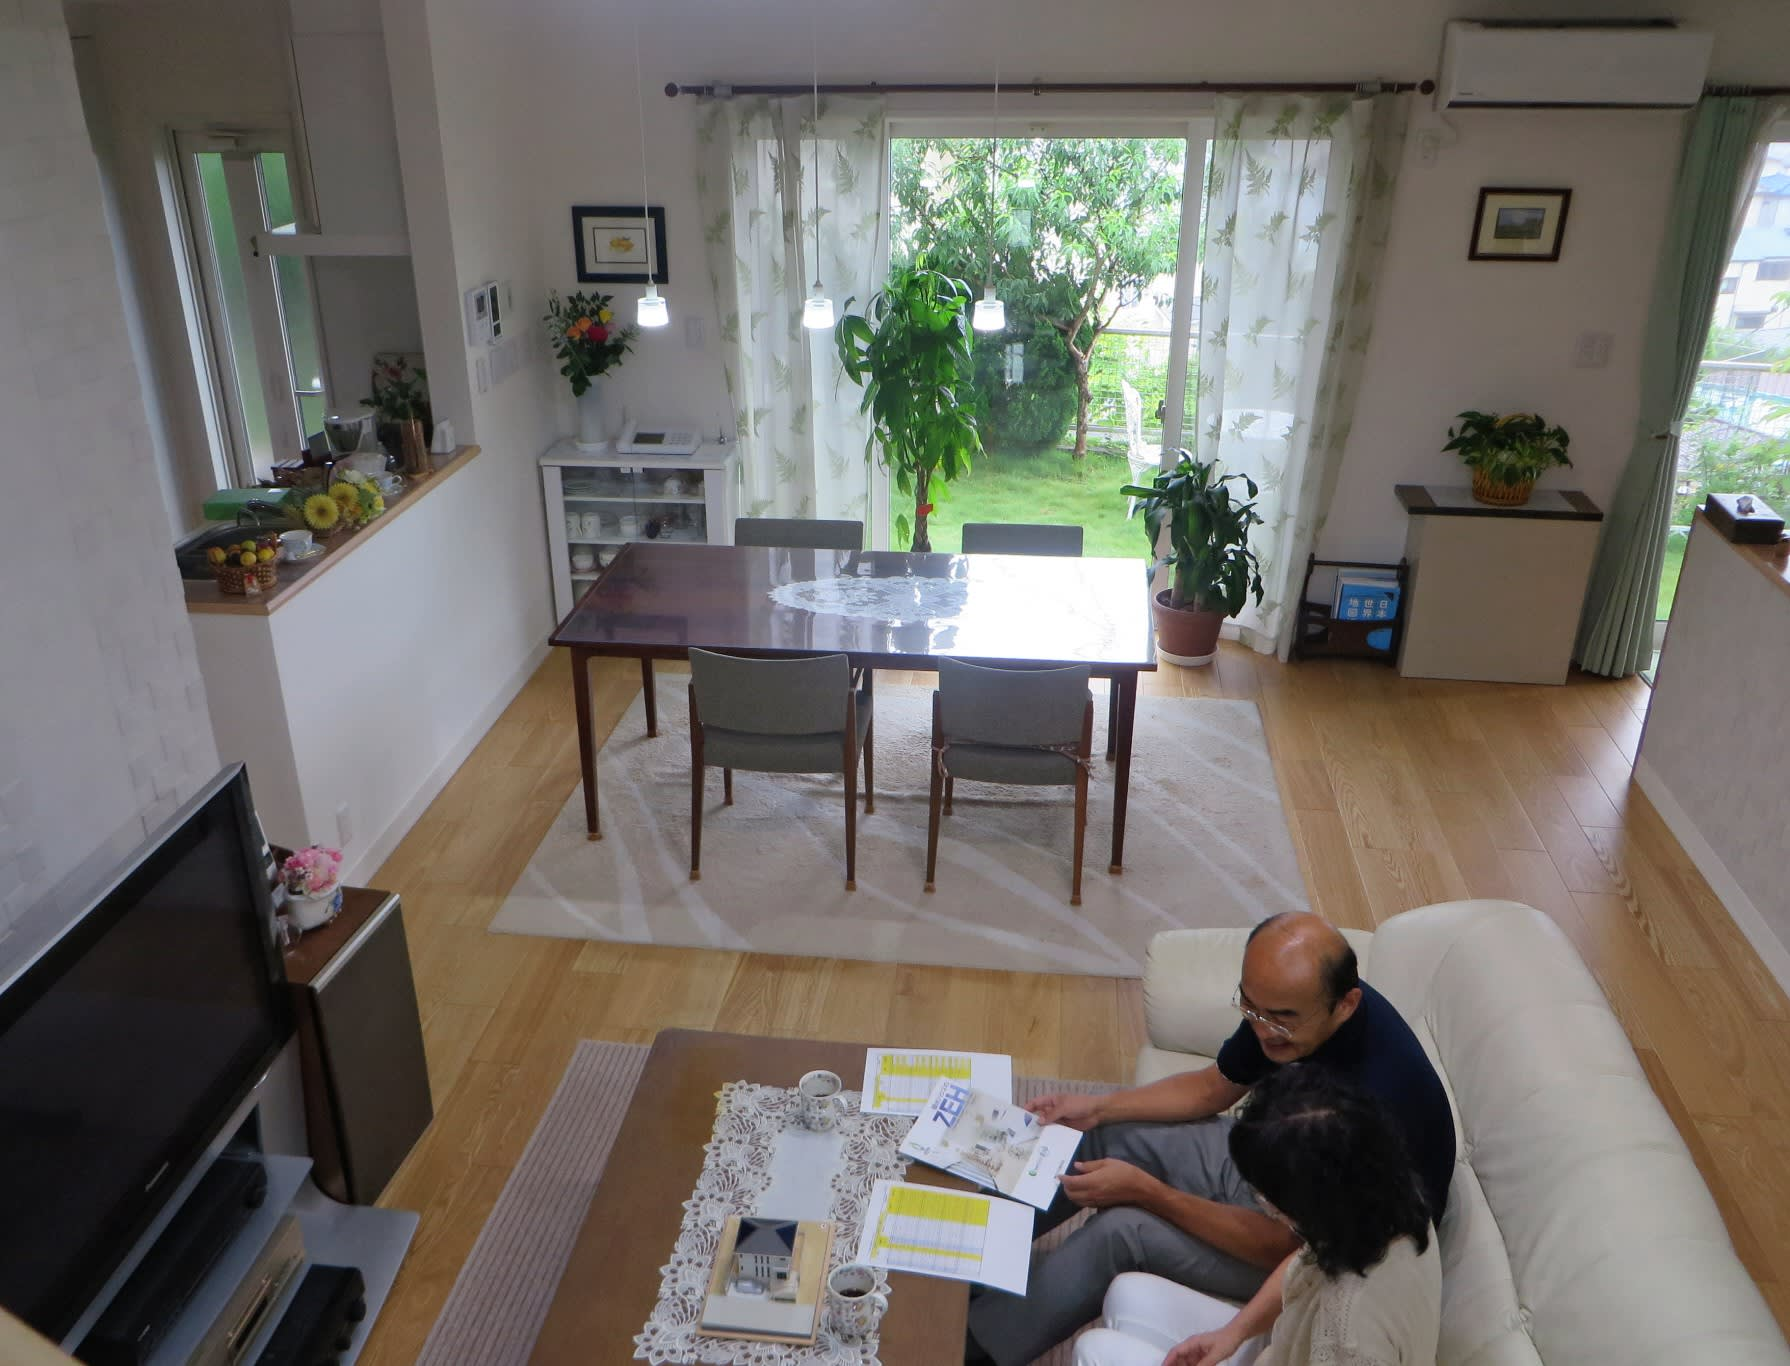 Japan sees the future and it is zero-energy homes on lighting home design, green home design, classic home design, hardened home design, design home design, leadership in energy and environmental design, netzero home design, zero waste design, passive solar building design, habitat for humanity home design, sustainable home design, architecture home design, self-sustaining home design, innovative home design, 2d home design, ecological home design, passive cooling home design, energy efficient design, northwest home design, construction home design,